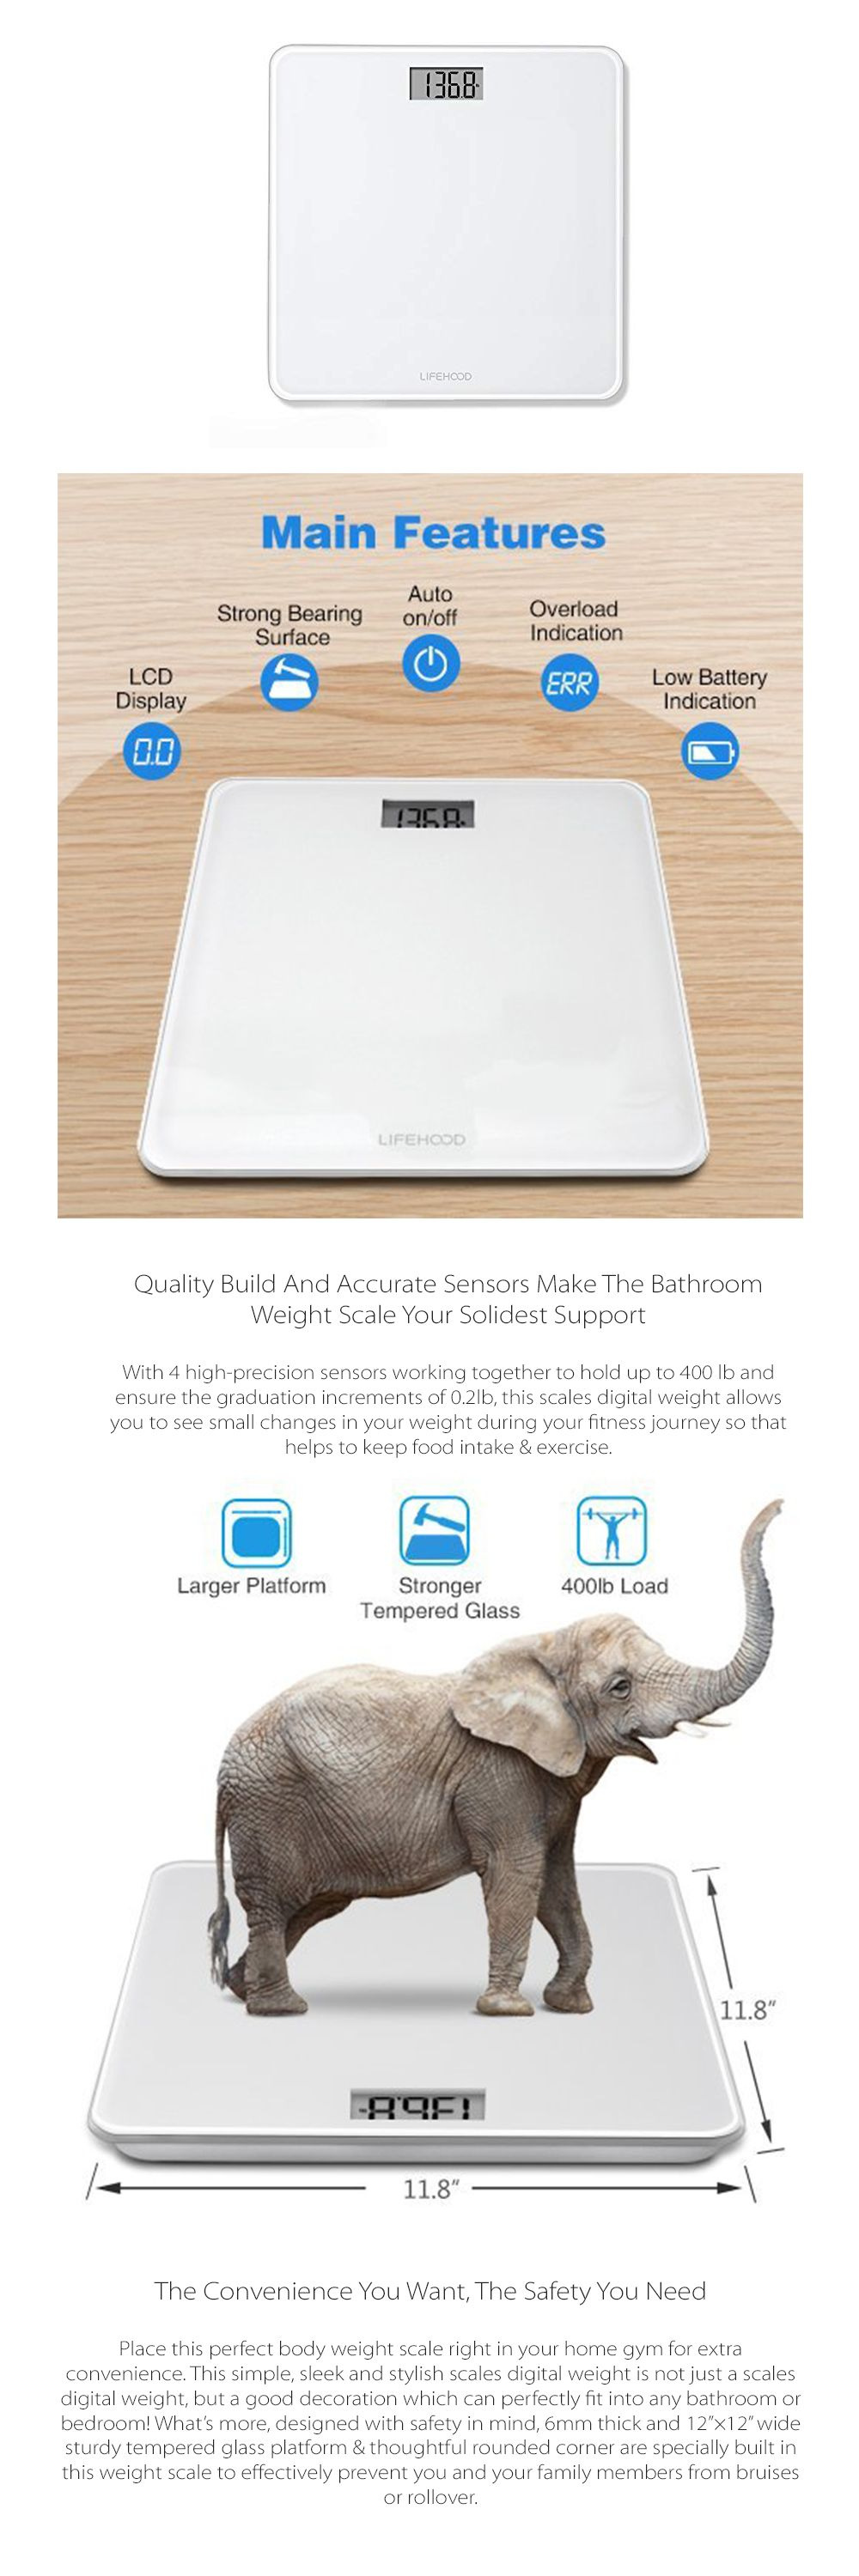 Digital Body Weight Scale 4 High Precision Sensors